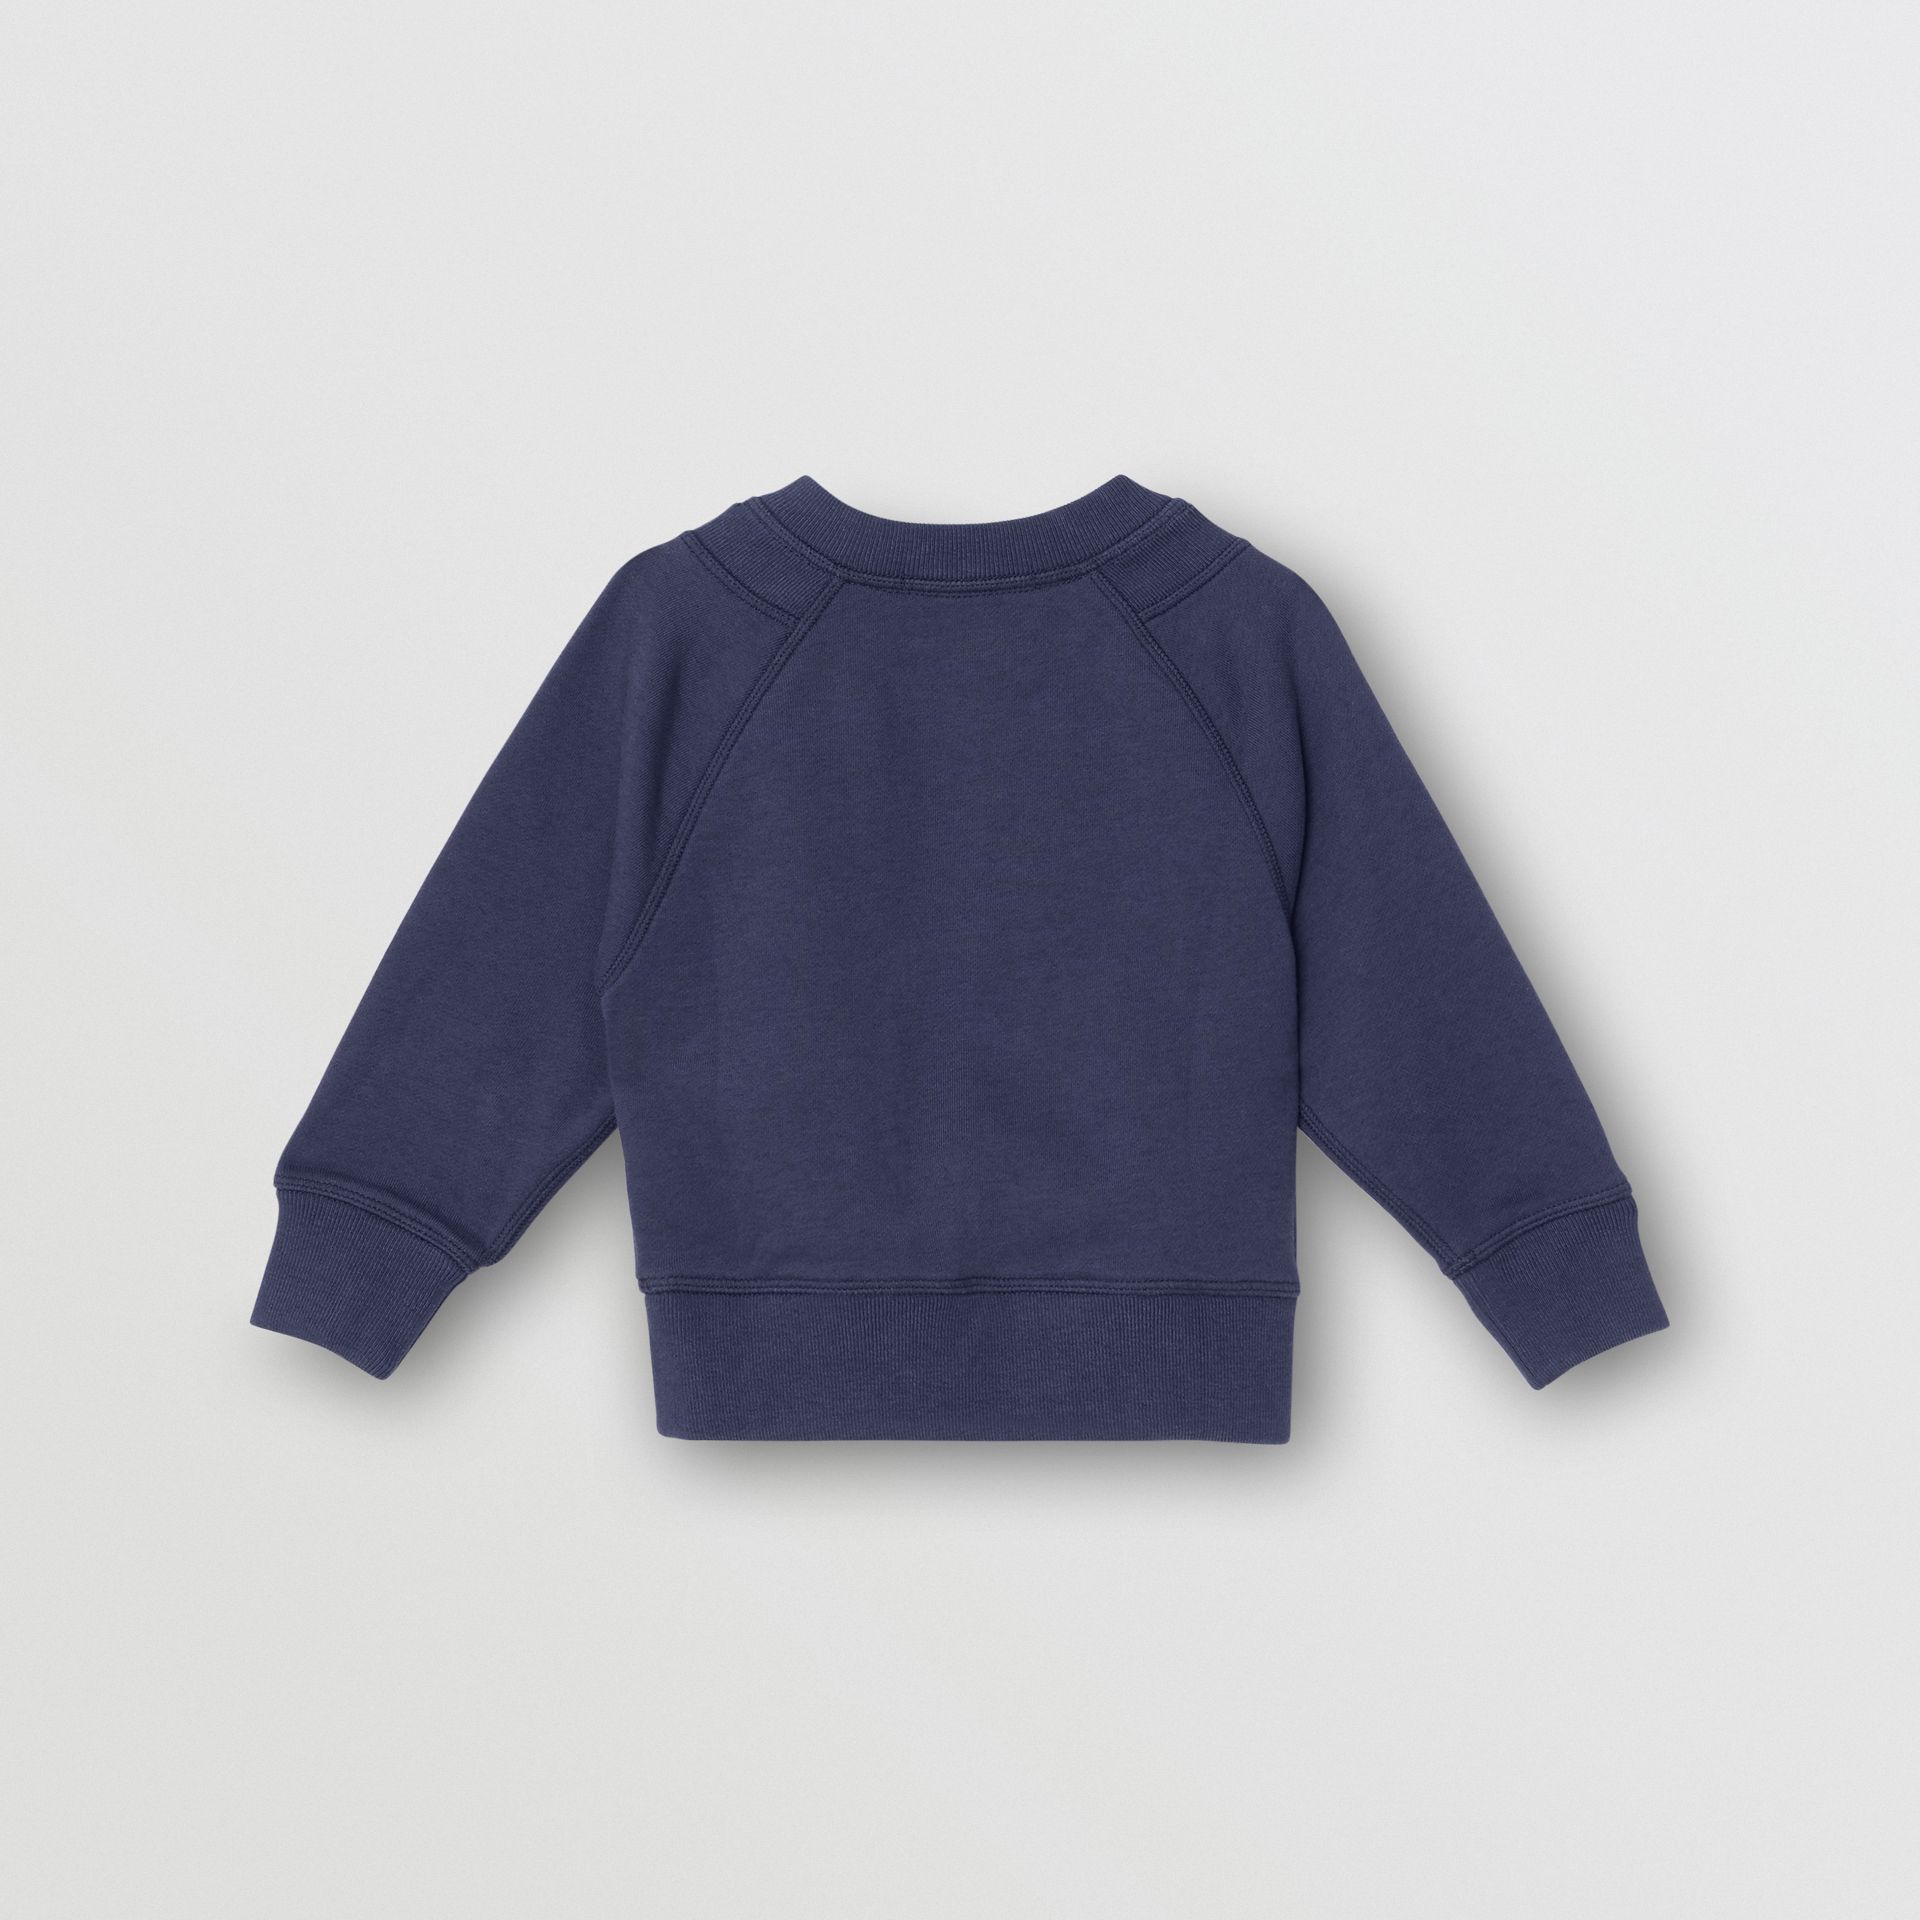 Sweat-shirt en coton Kingdom (Camaïeu De Bleus Ardoise) - Enfant | Burberry - photo de la galerie 3